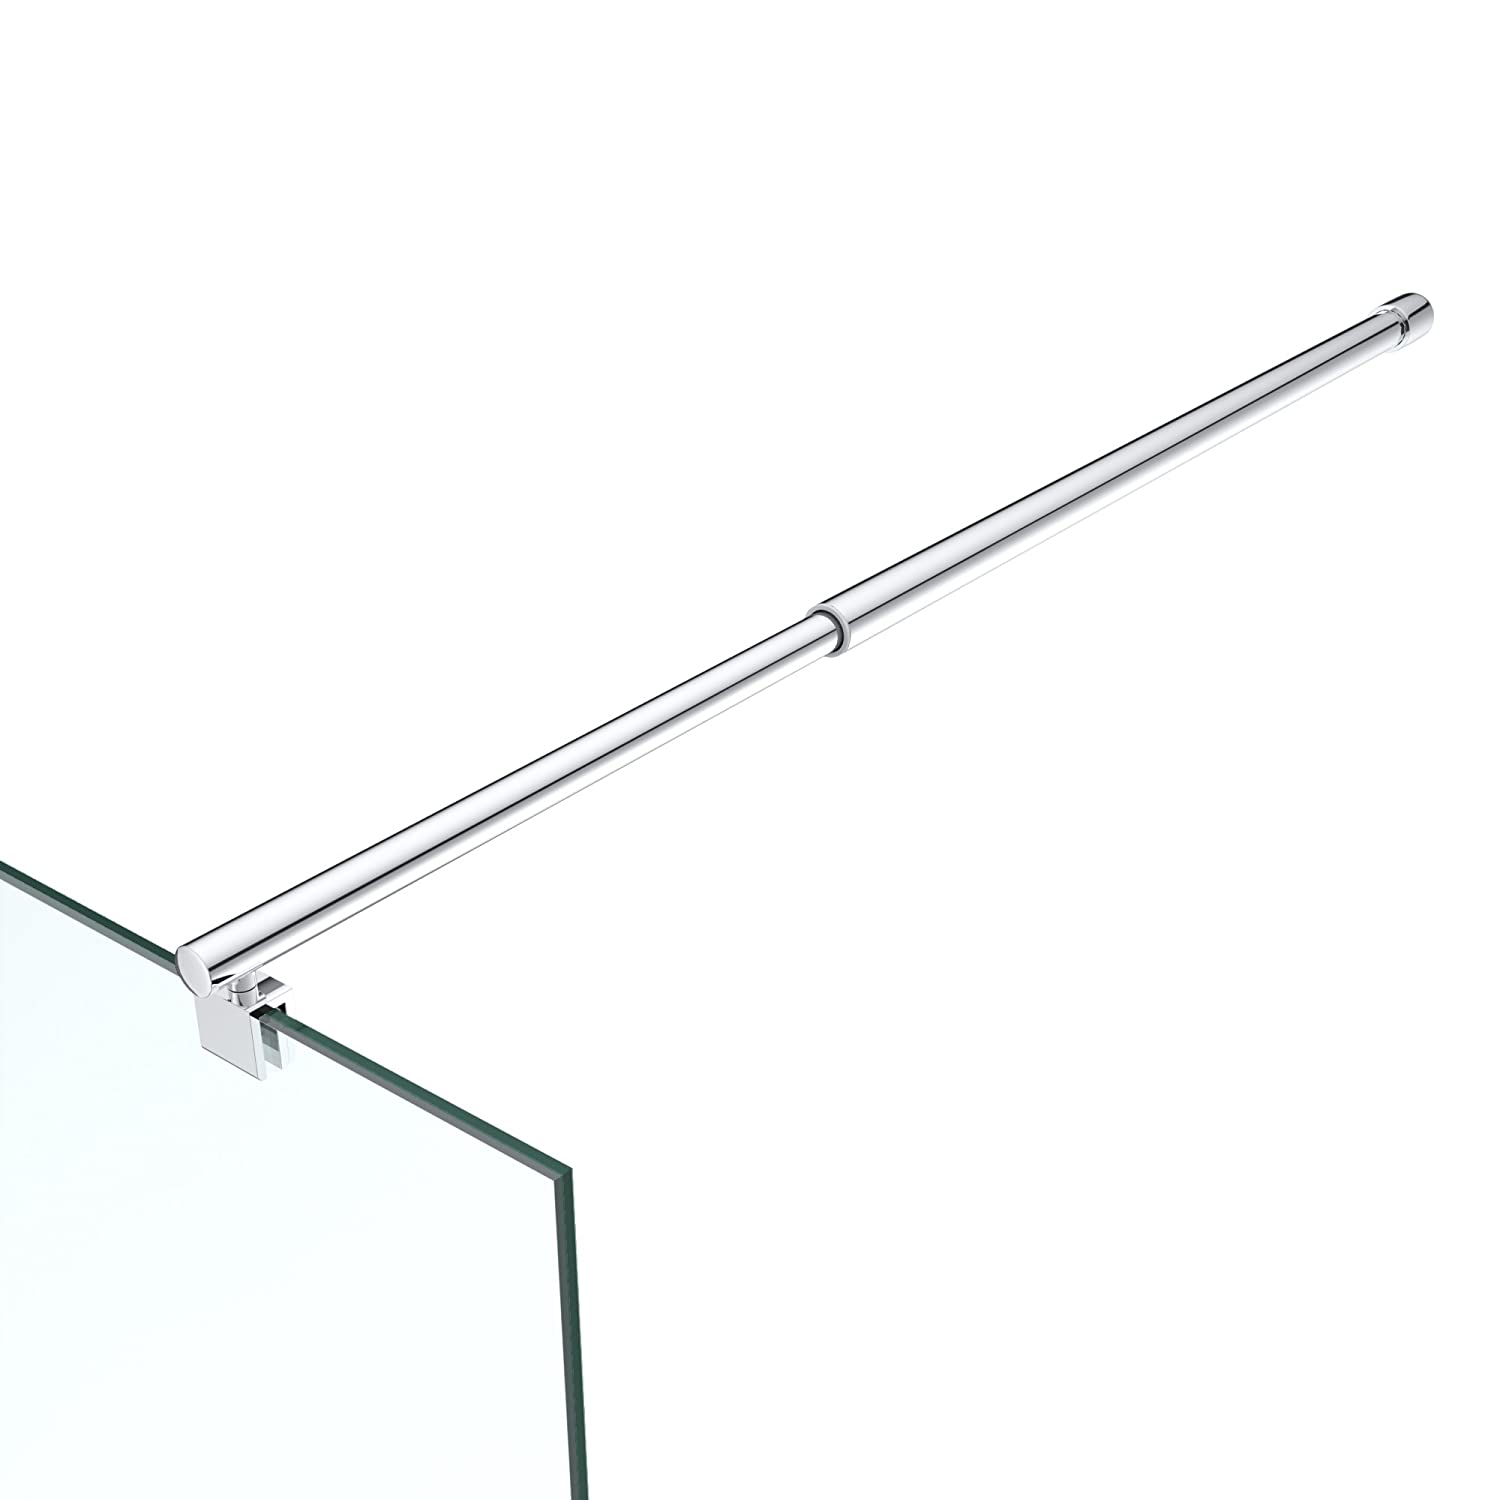 700mm to 1200mm Telescopic Bar Support Bar Support Arm stainless steel for Wet Room Shower Screen Walk In Shower Enclosure Thickness 6 - 10 mm GS21 Metaltimex